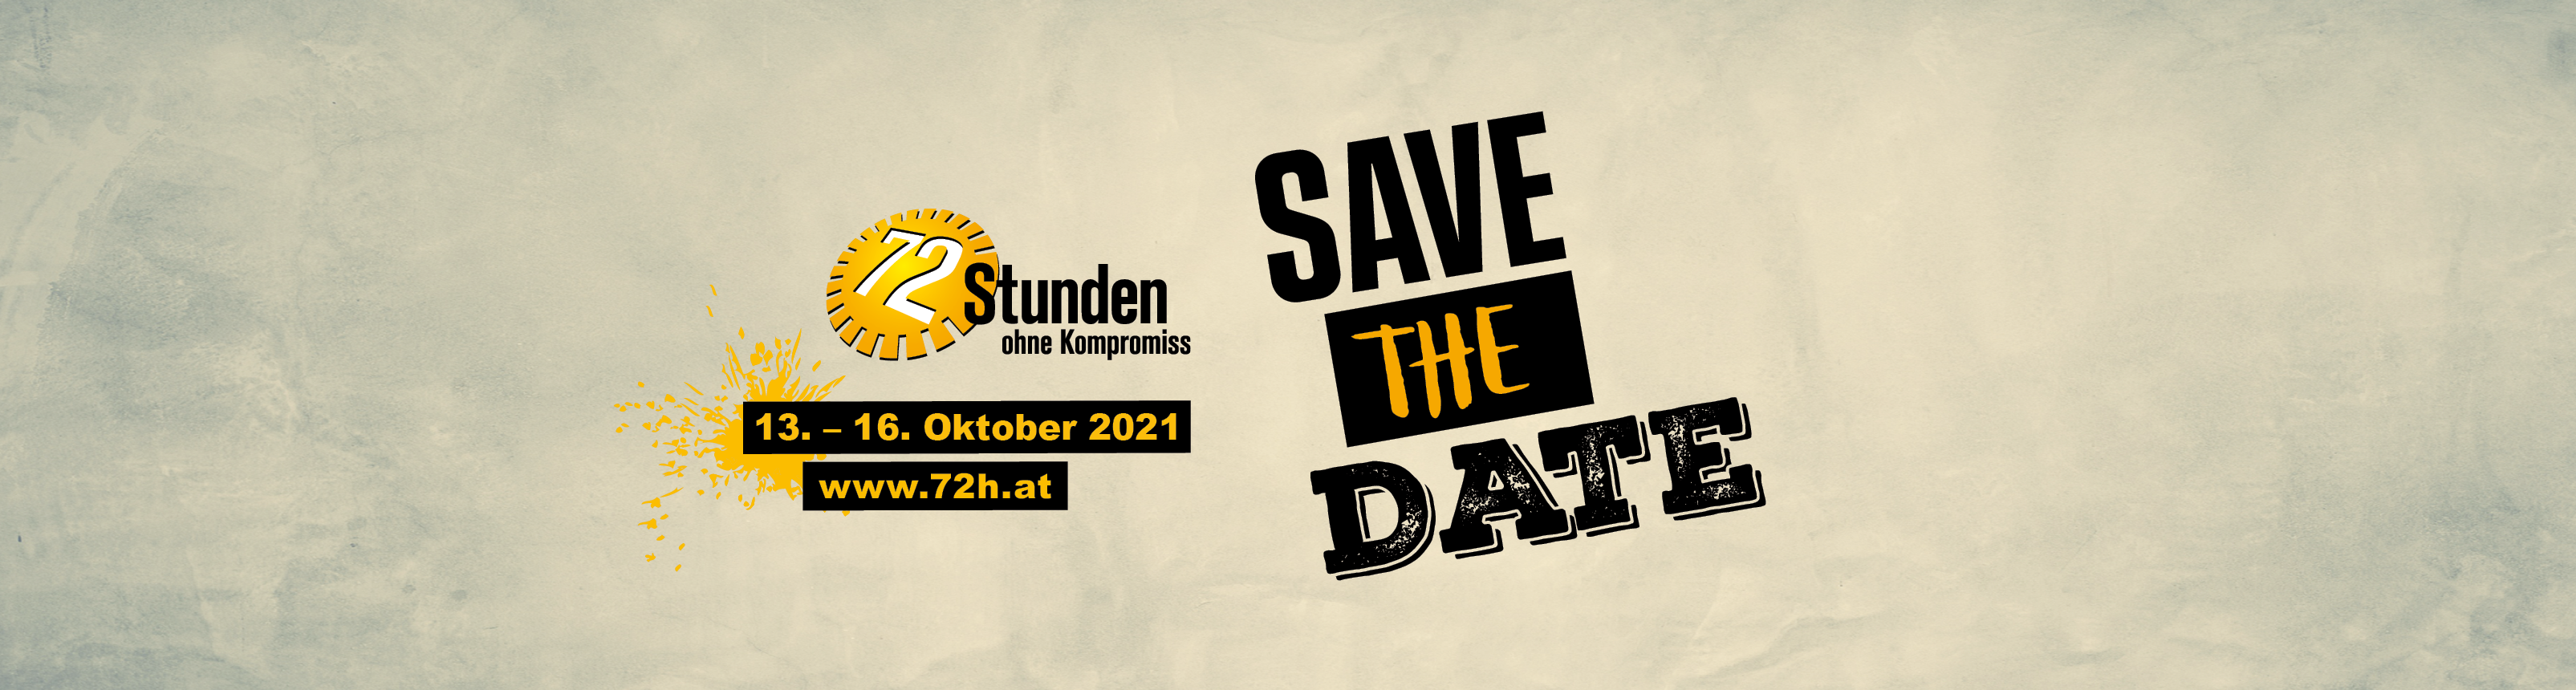 Save the Date - 72 Stunden ohne Kompromiss